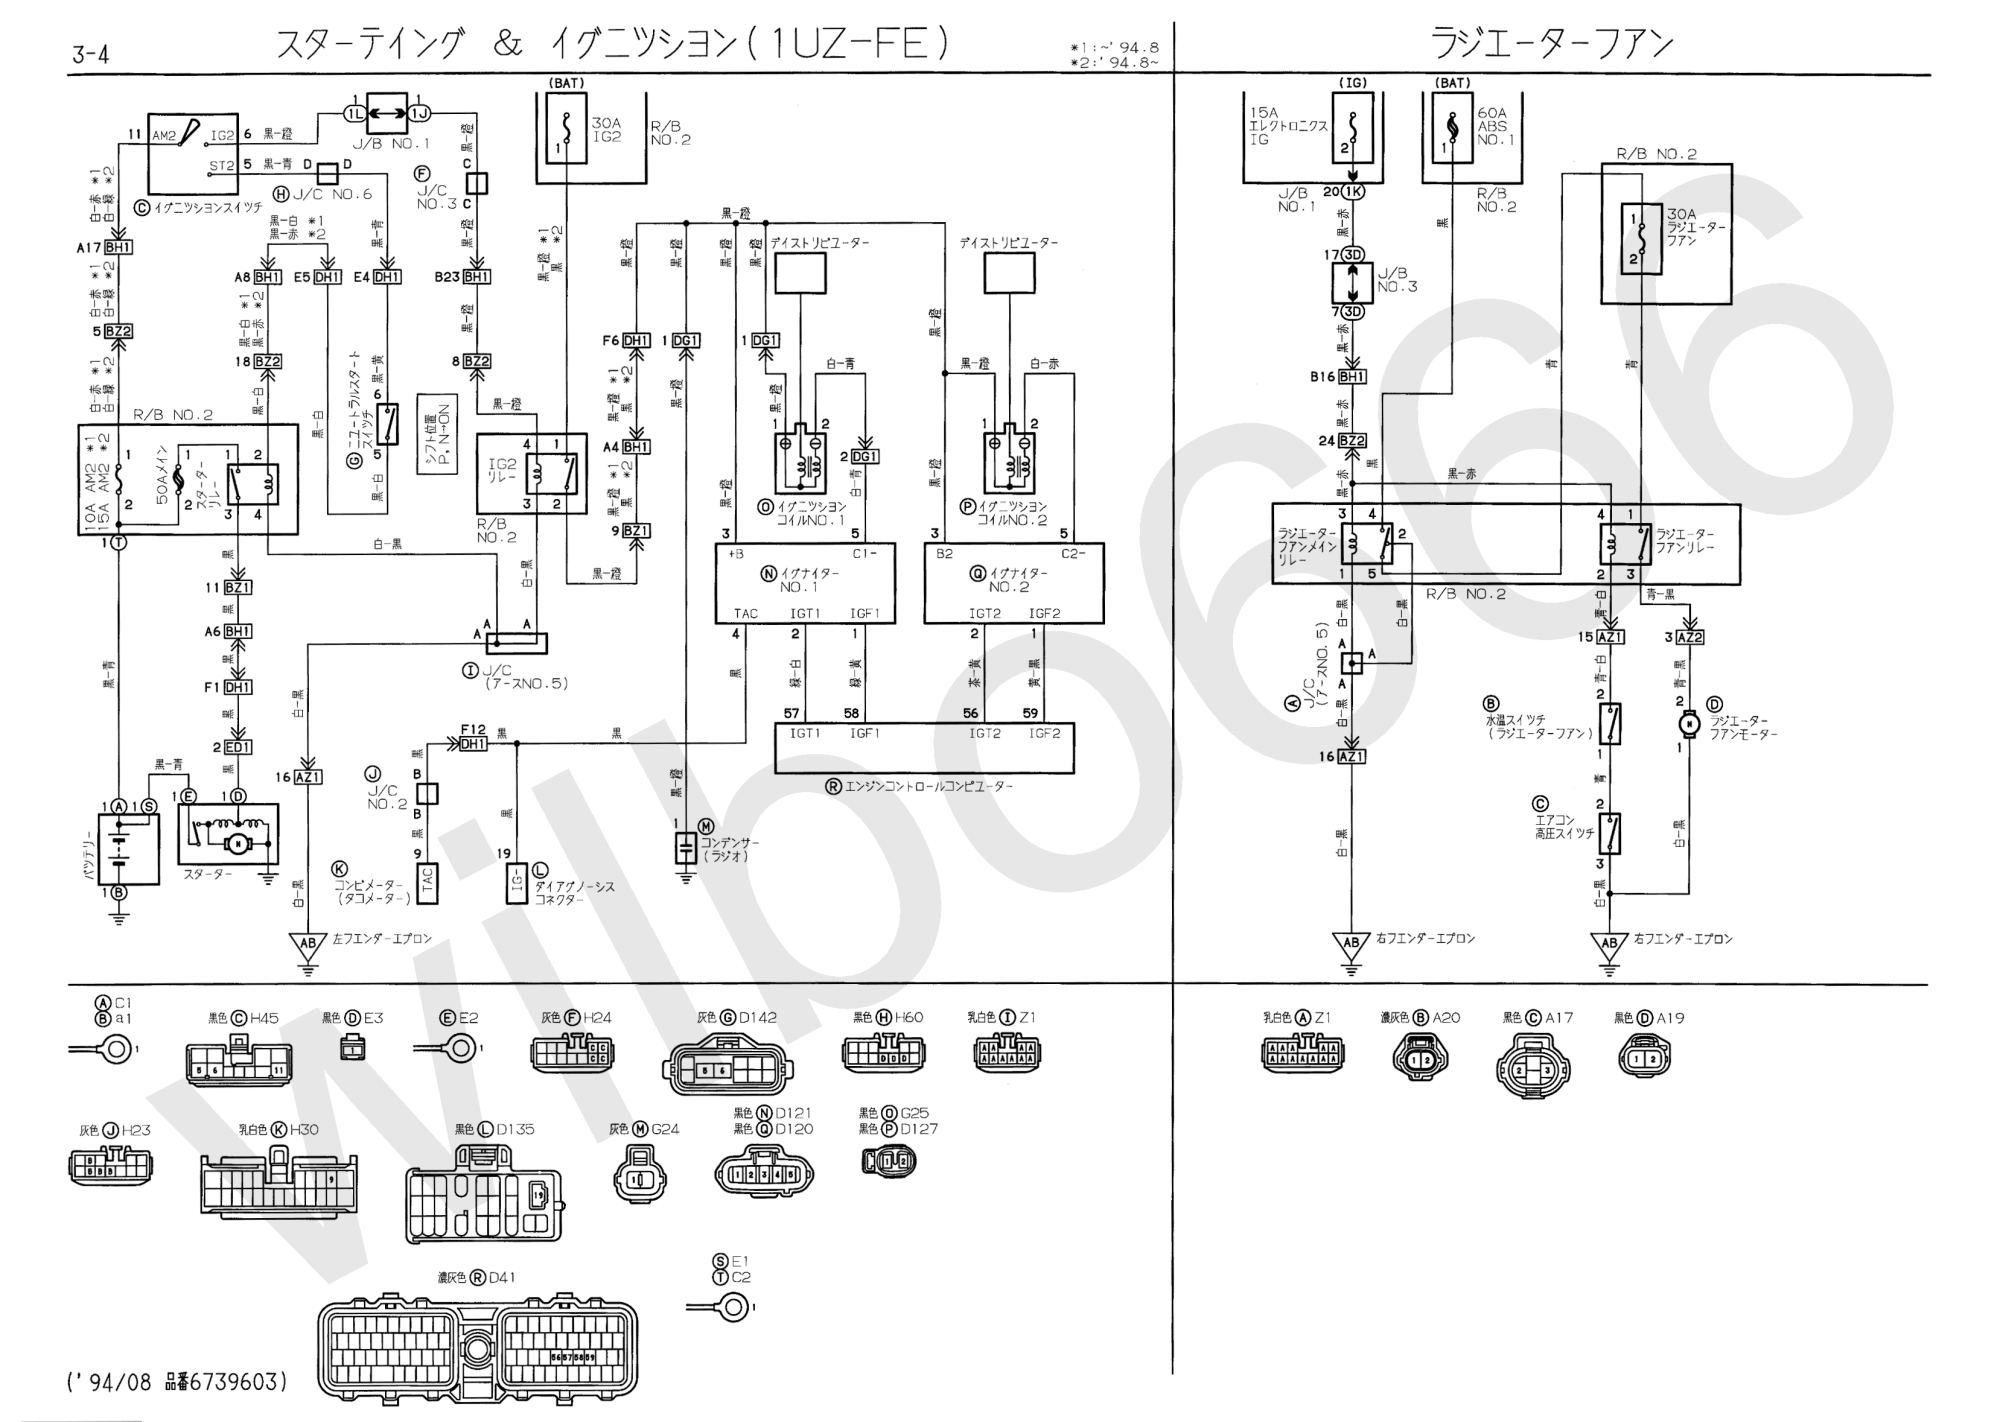 hight resolution of wilbo666 1uz fe uzs143 aristo engine wiring lexus v8 1uzfe wiring diagram 1uz fe wiring diagram